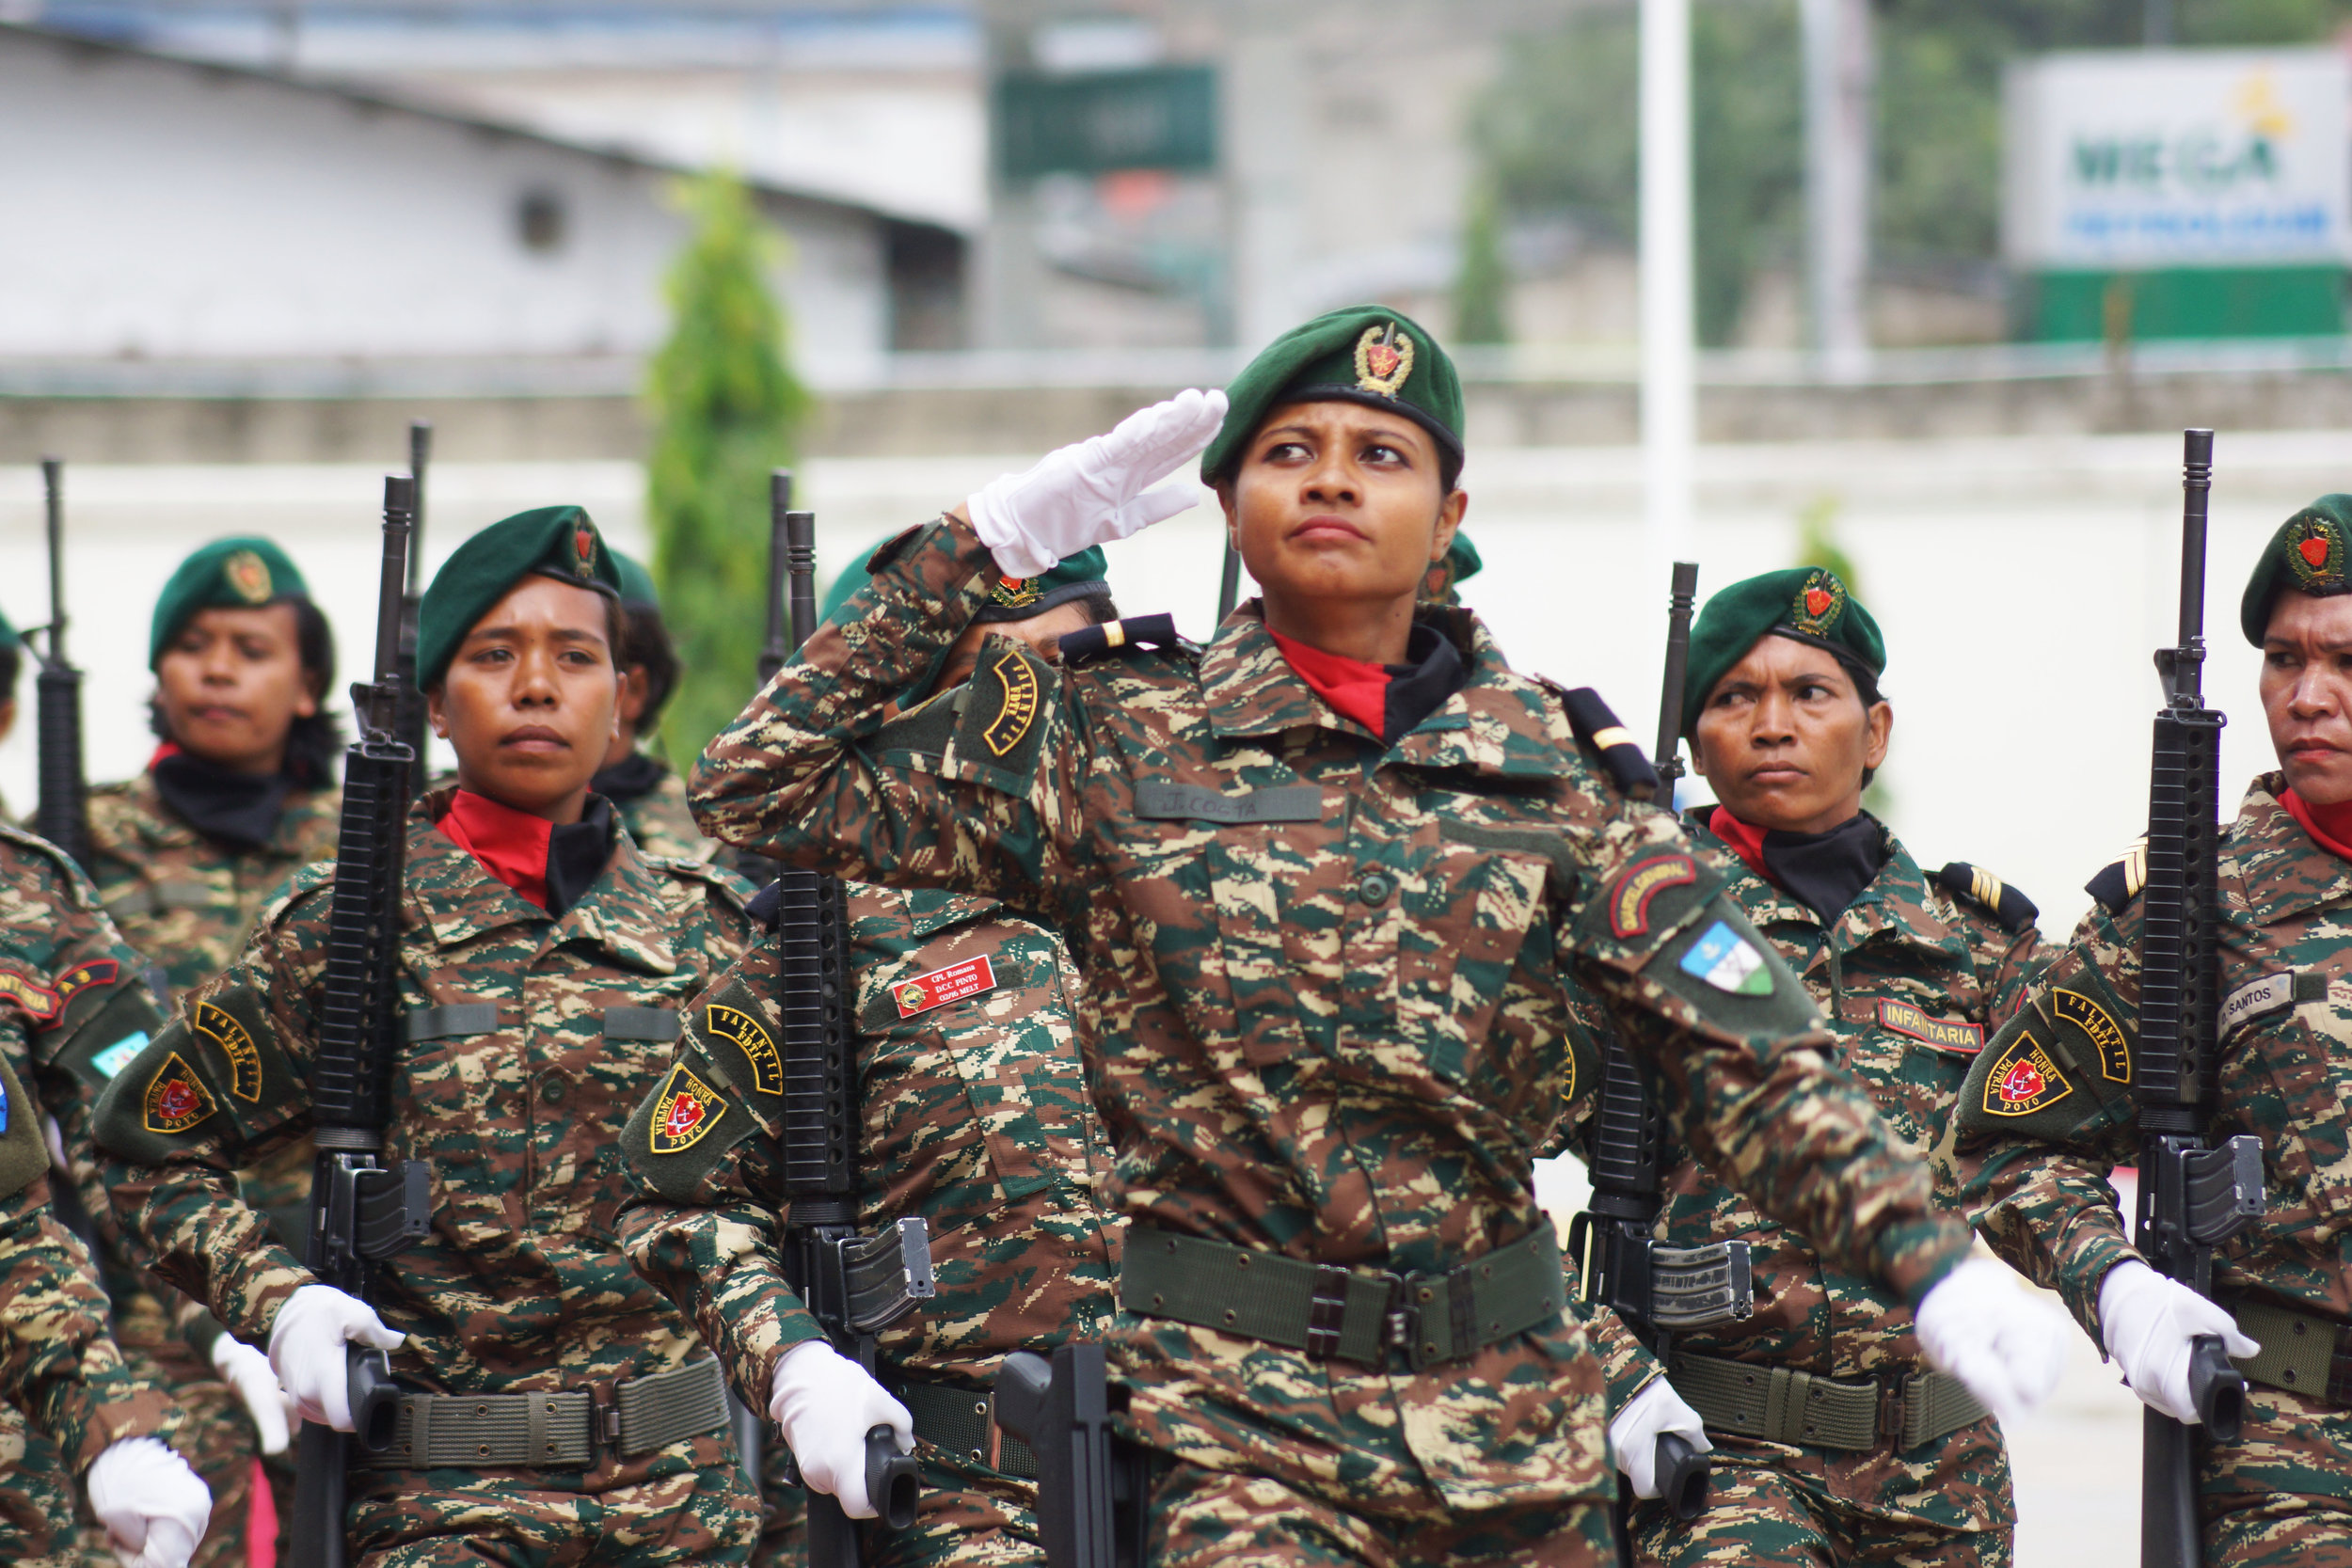 Female soldiers soluting President Francisco Guterres at a military parade celebrating the 17th anniverssary of the Timor Leste defense force. (Edward Cavanough, February 2, 2018, Dili).